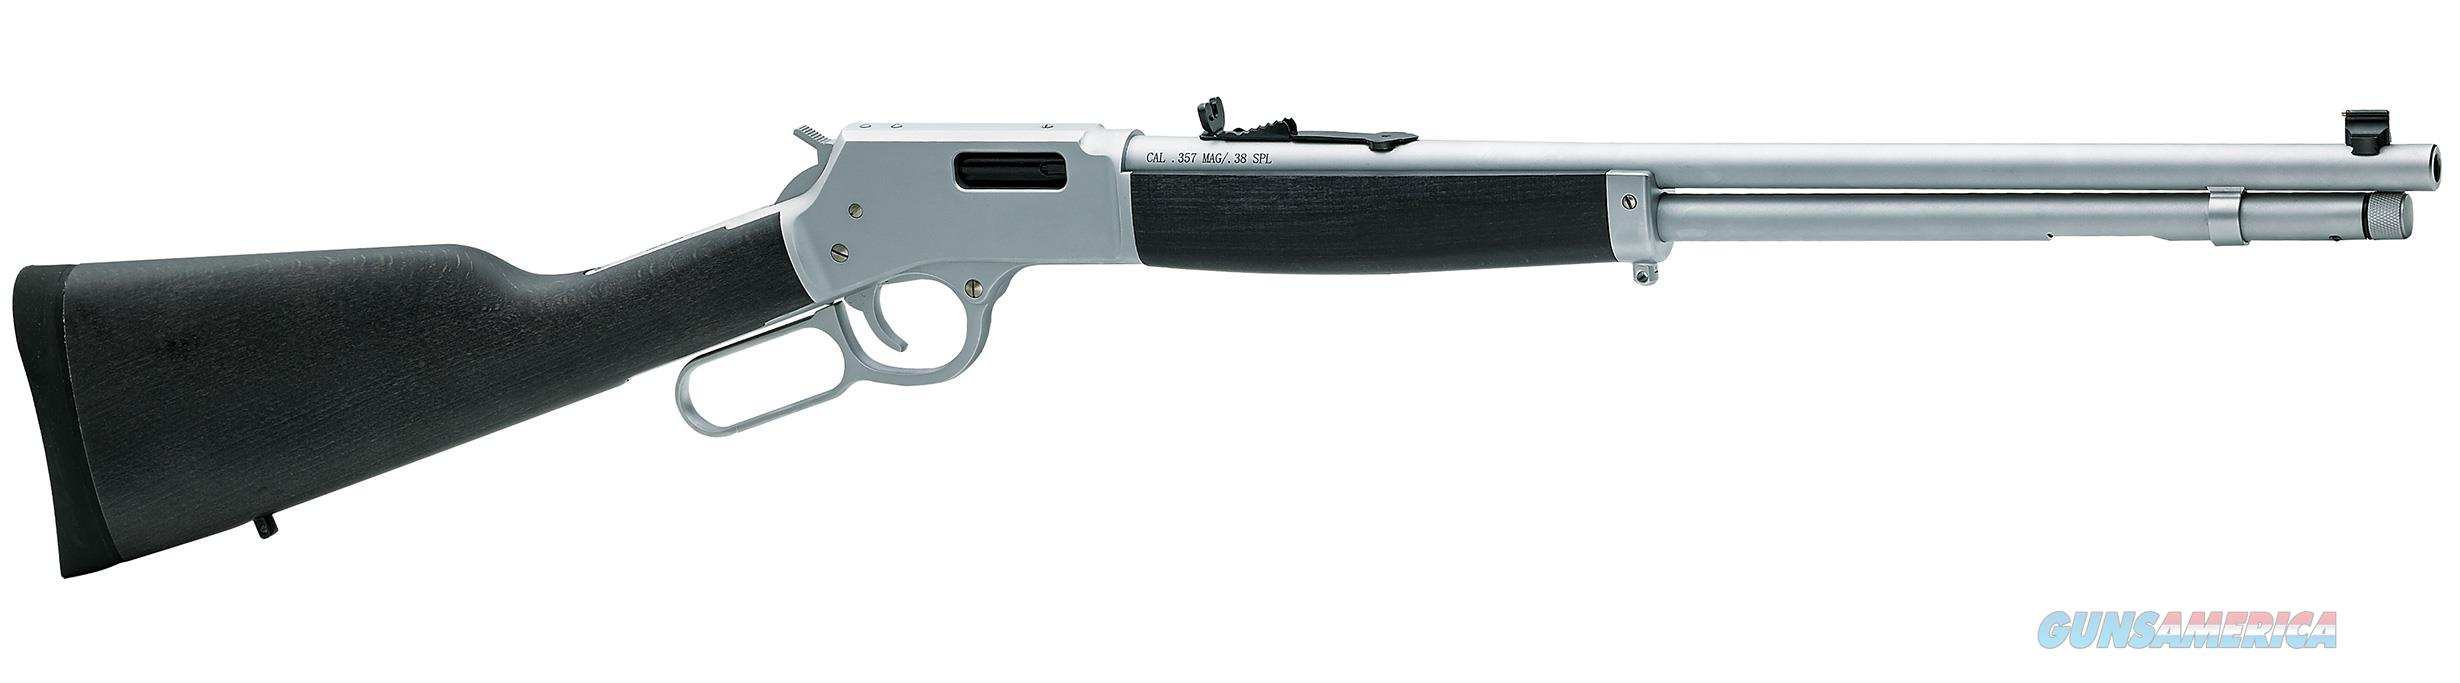 Henry Big Boy All-Weather .357 Magnum/.38 Special H012MAW   Guns > Rifles > Henry Rifle Company